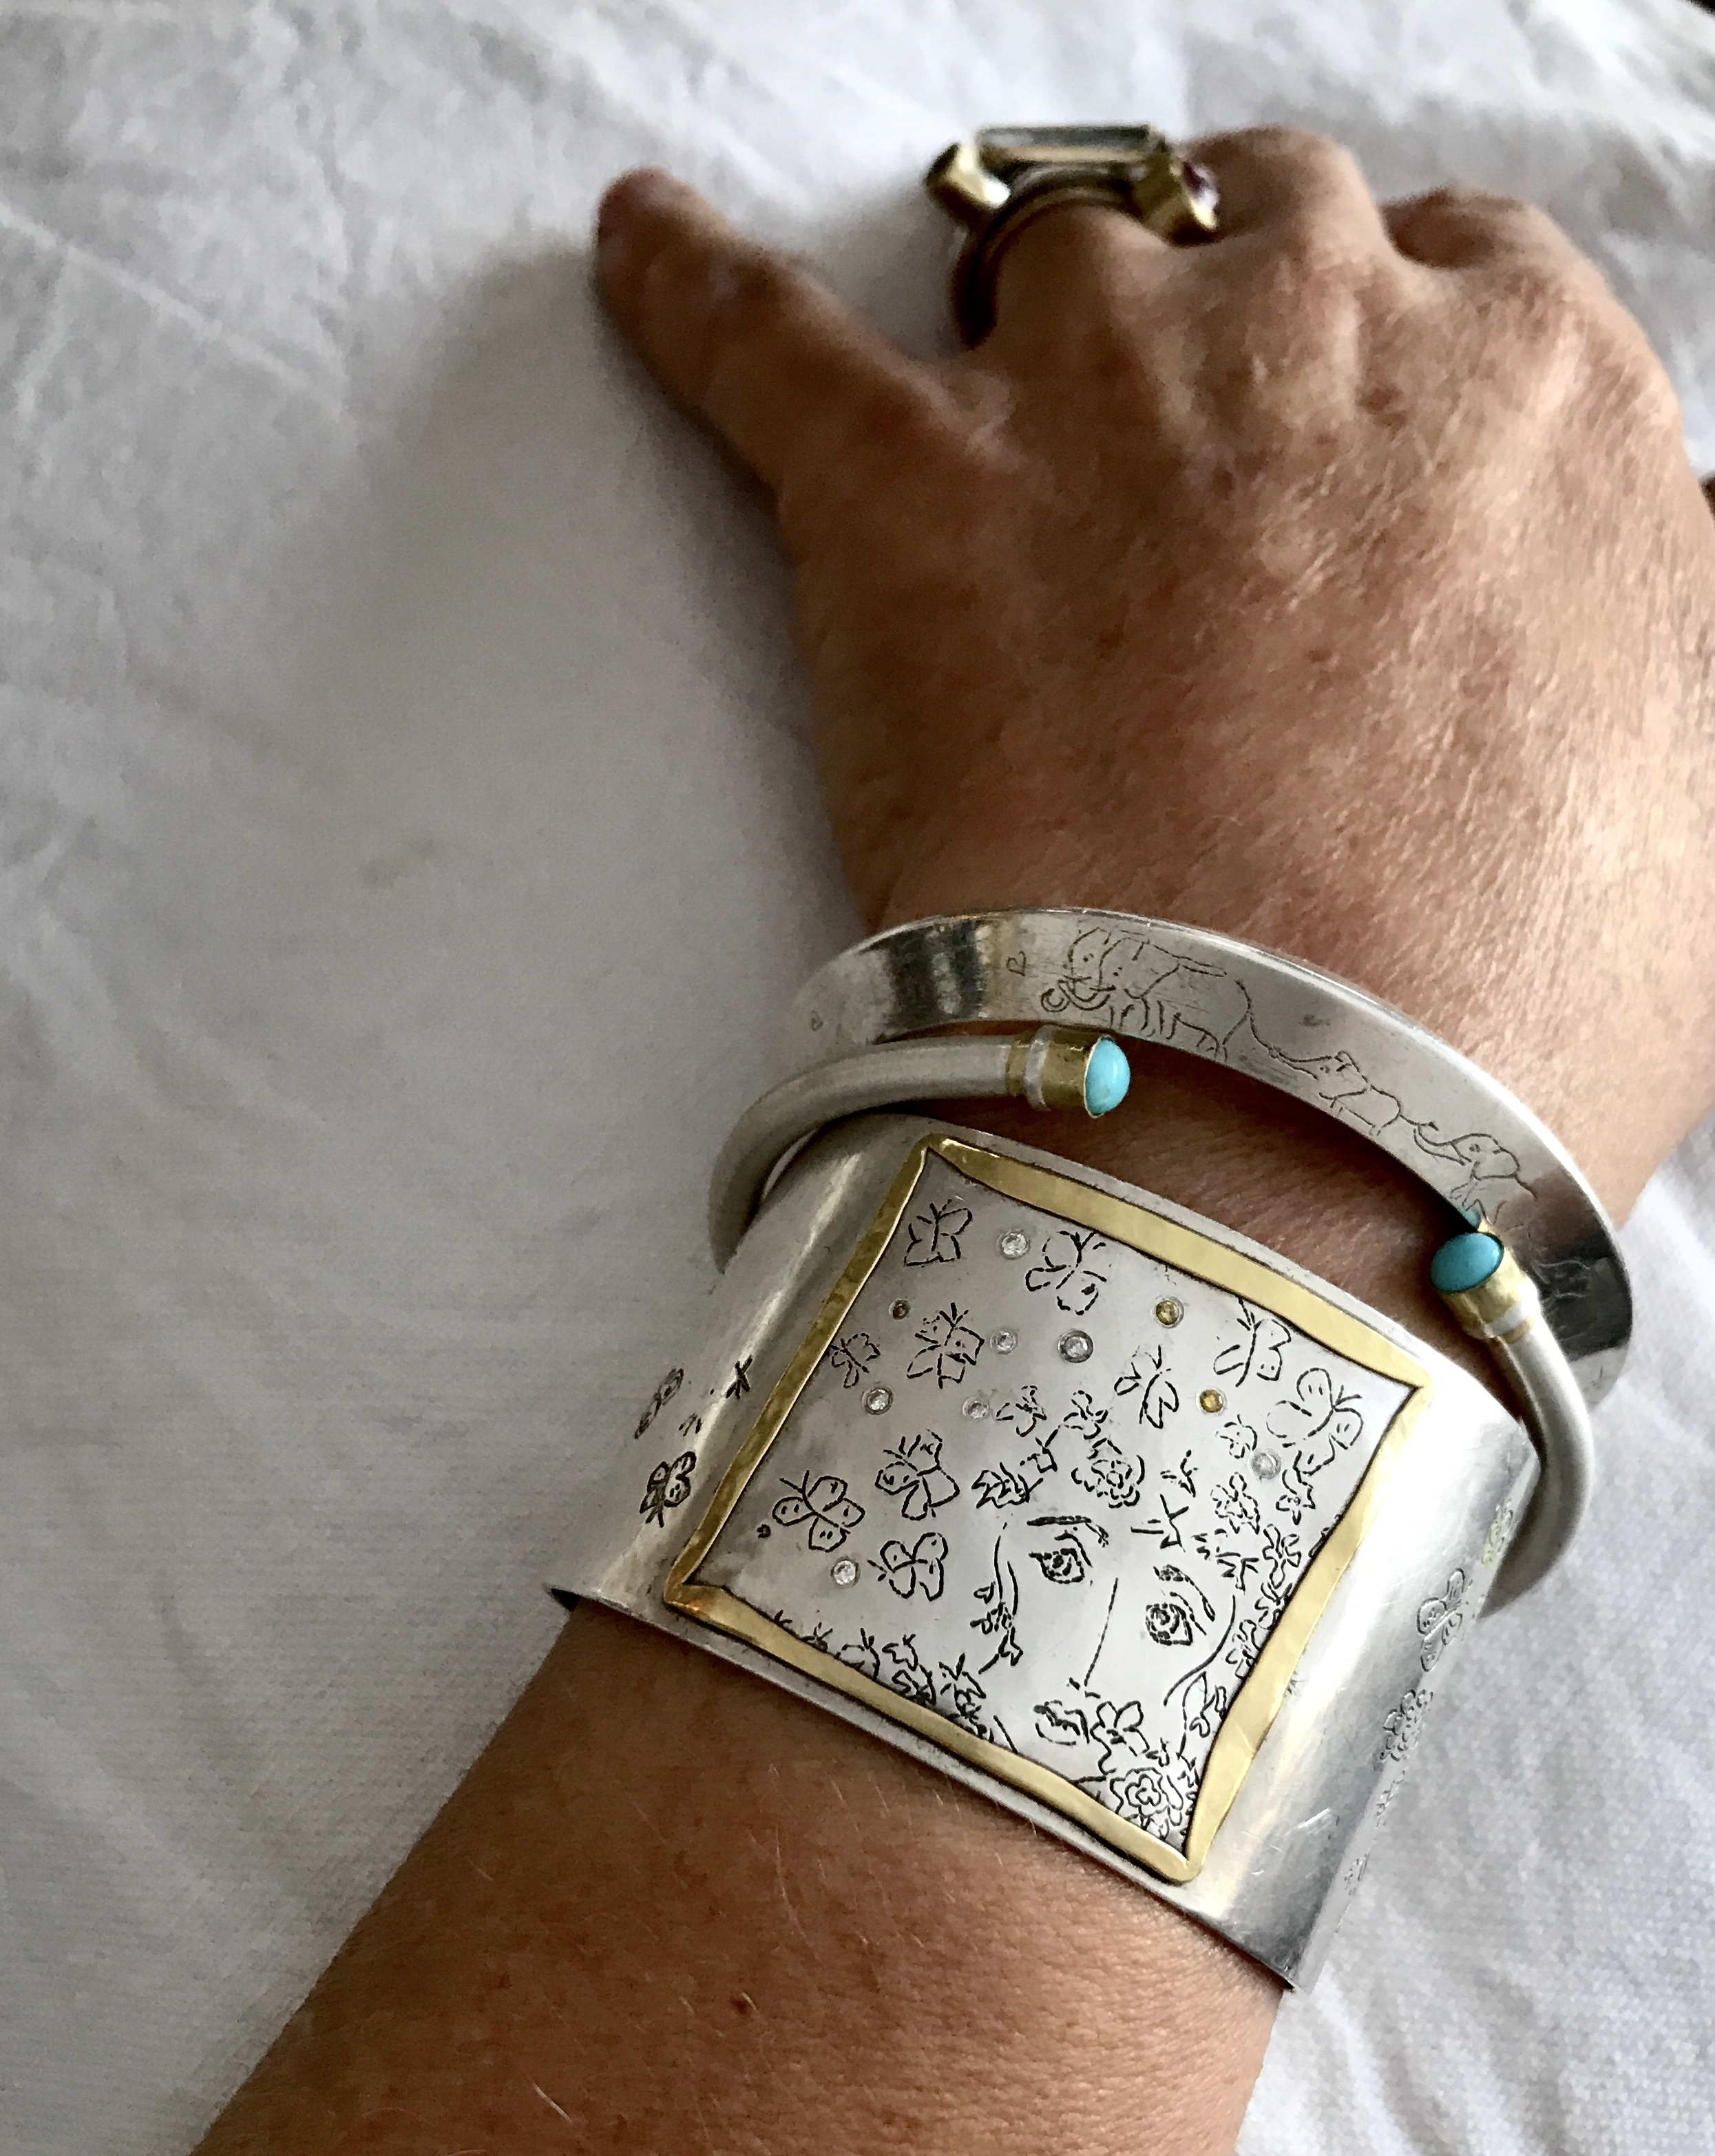 """My wrist on a typical day with my self-portrait titled """"losing my mind, or in my creative space"""""""", along with two others. . . the other wrist is equally adorned. circa 2019"""